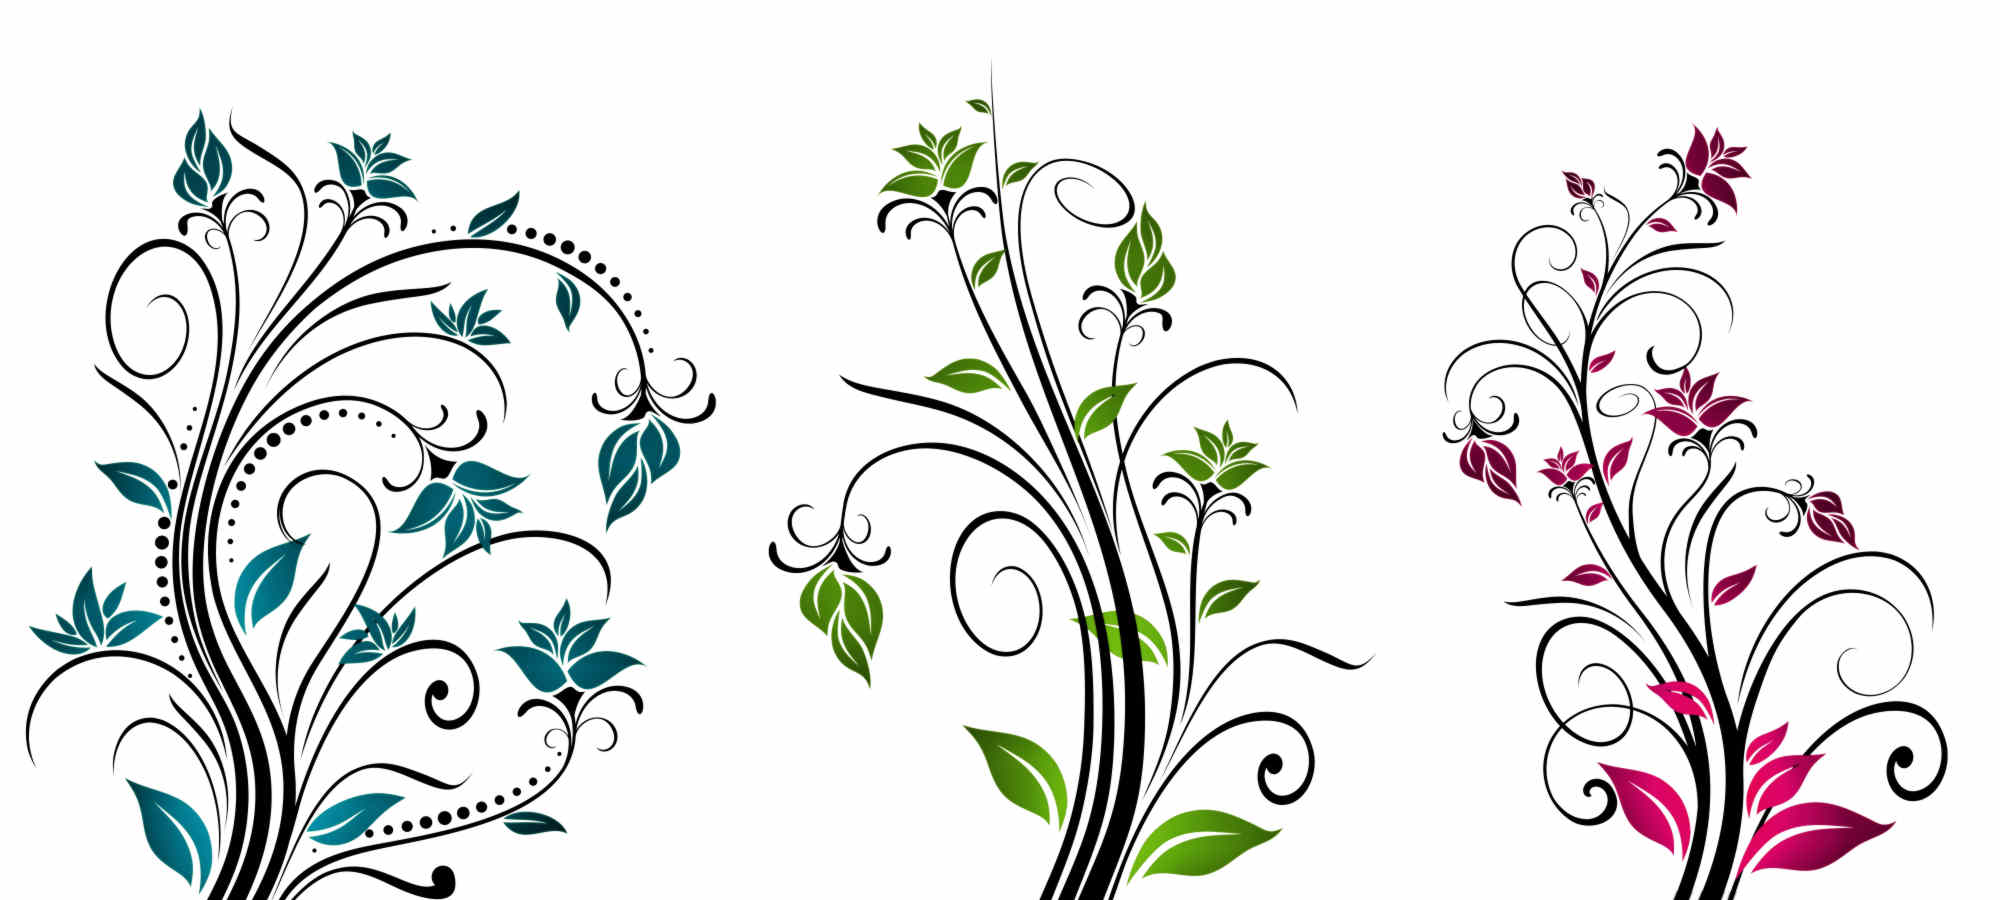 vector clipart flowers - photo #45